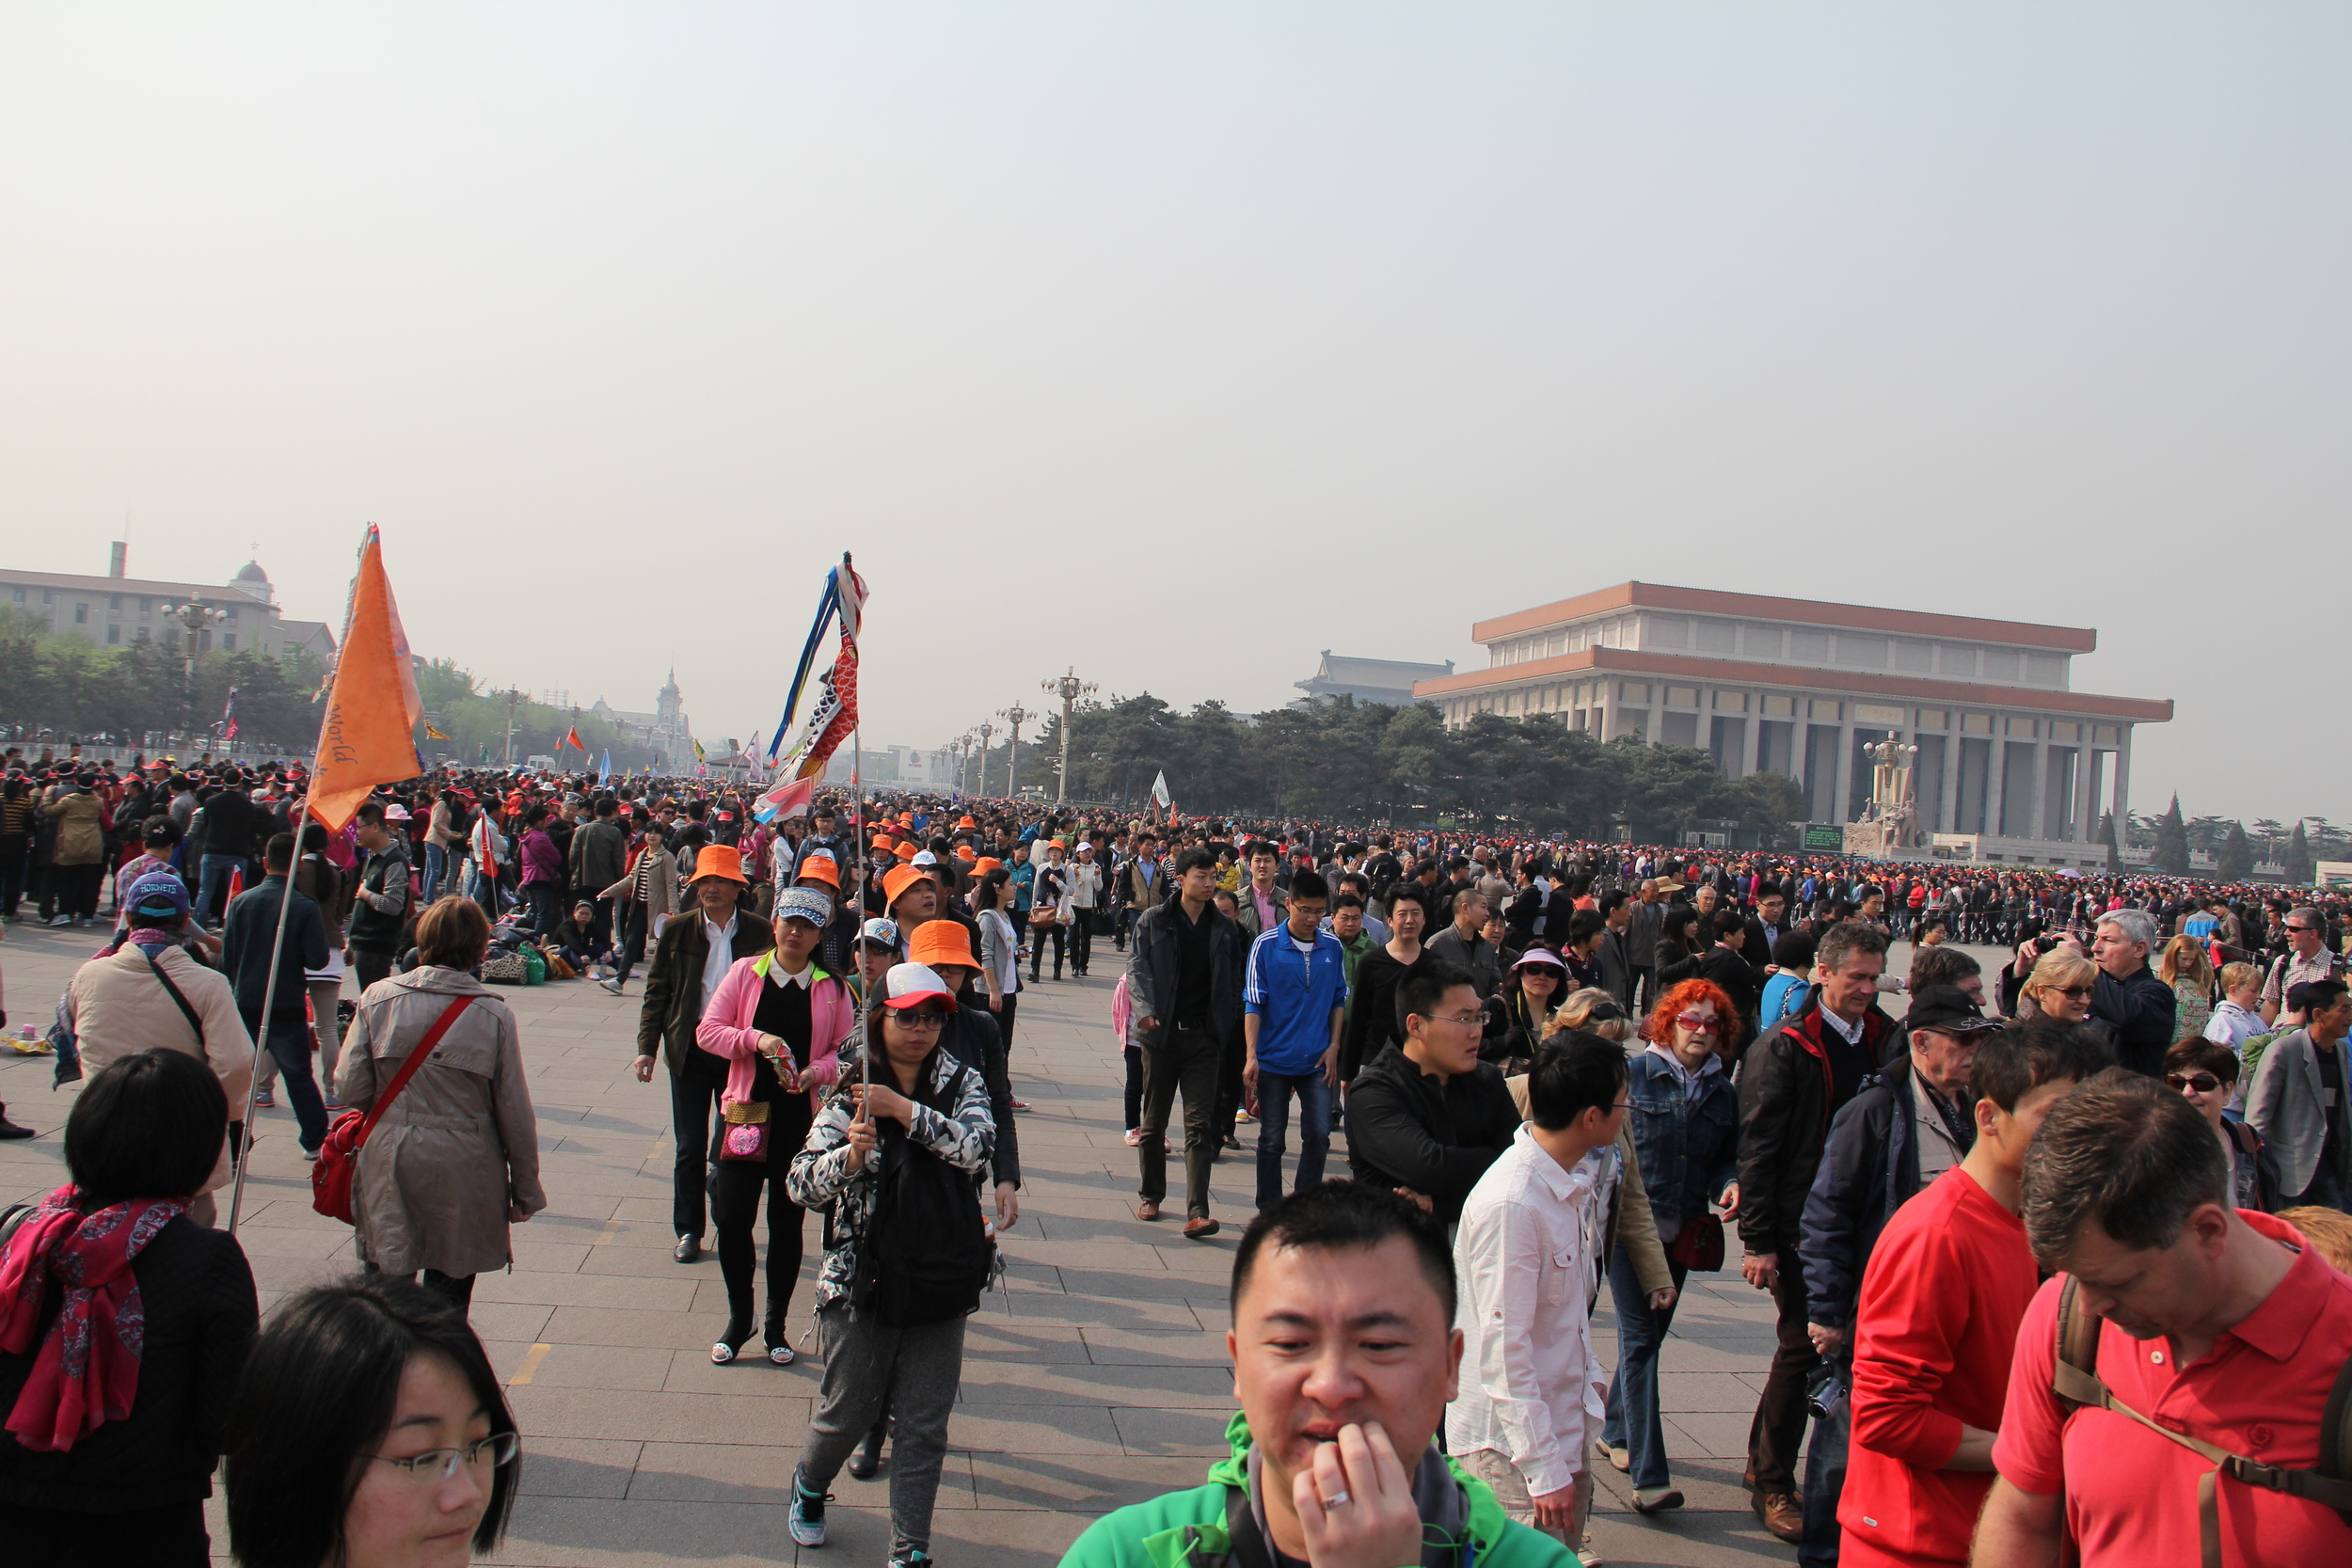 A glimpse in one direction of the amount of people... unbelievable! People from all over China come to see this area and of course all the tourists come too.